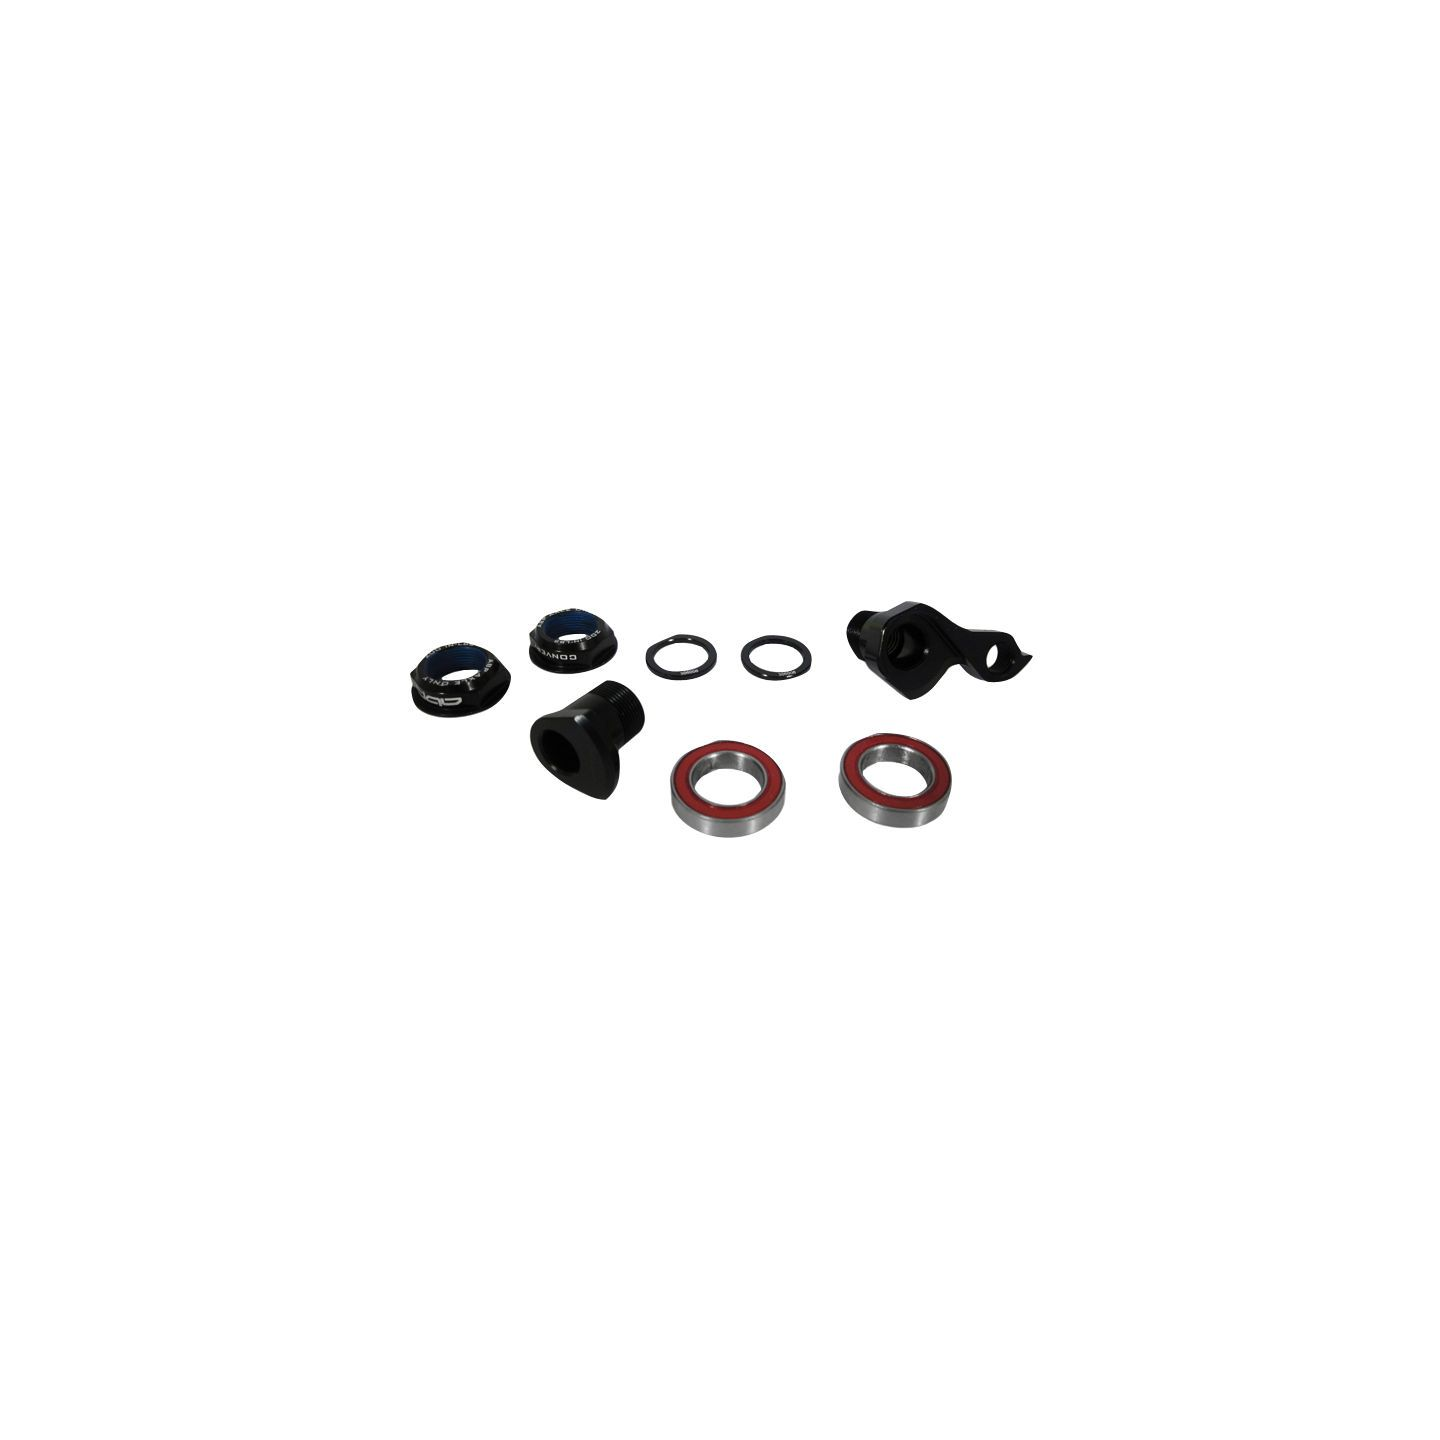 Kit de conversion ABP Trek 142 x 12 fixation pour patte